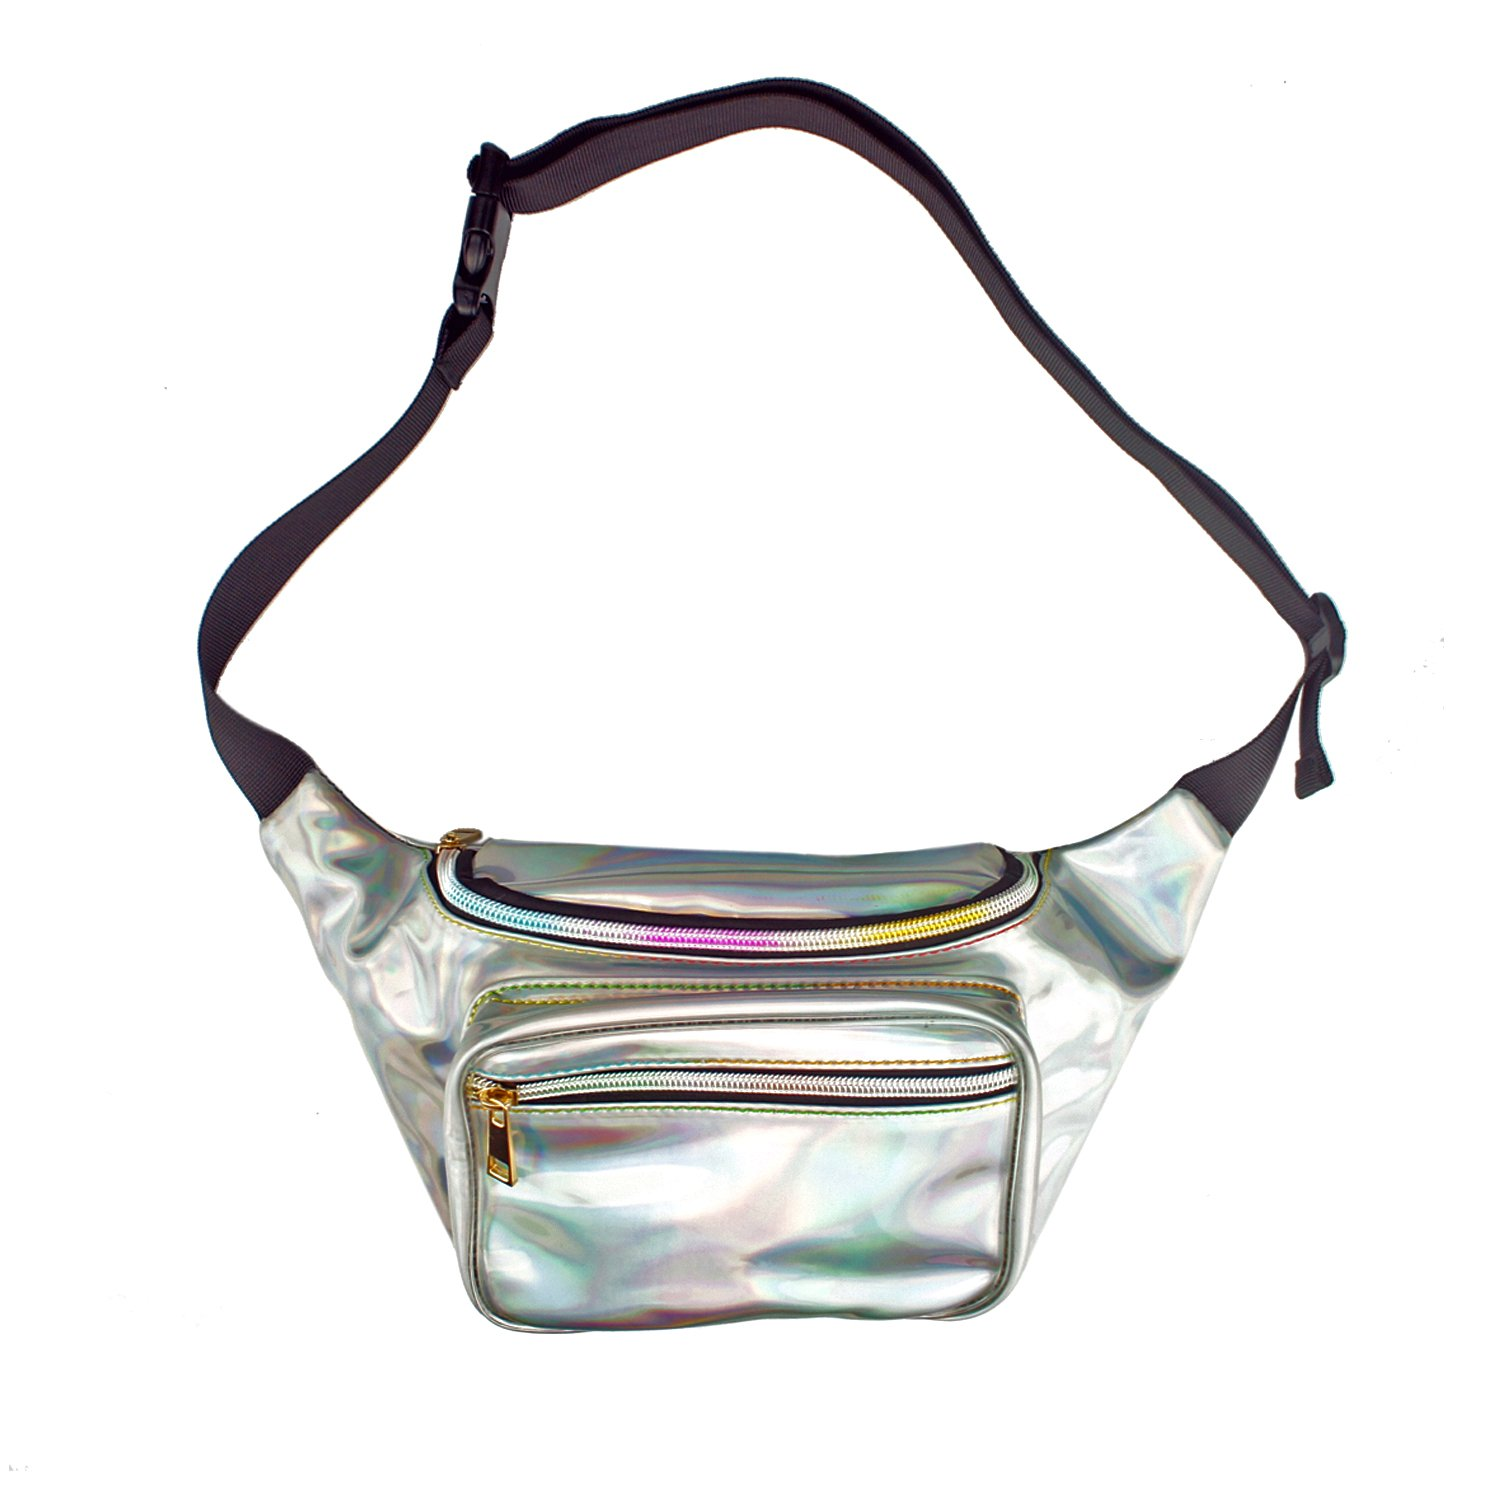 Holographic Silver Beach Beach Party ZELIN Fanny Pack for Women and Men Waterproof Laser Waist Bag Trip 80s//90s Rave Holographic Festival